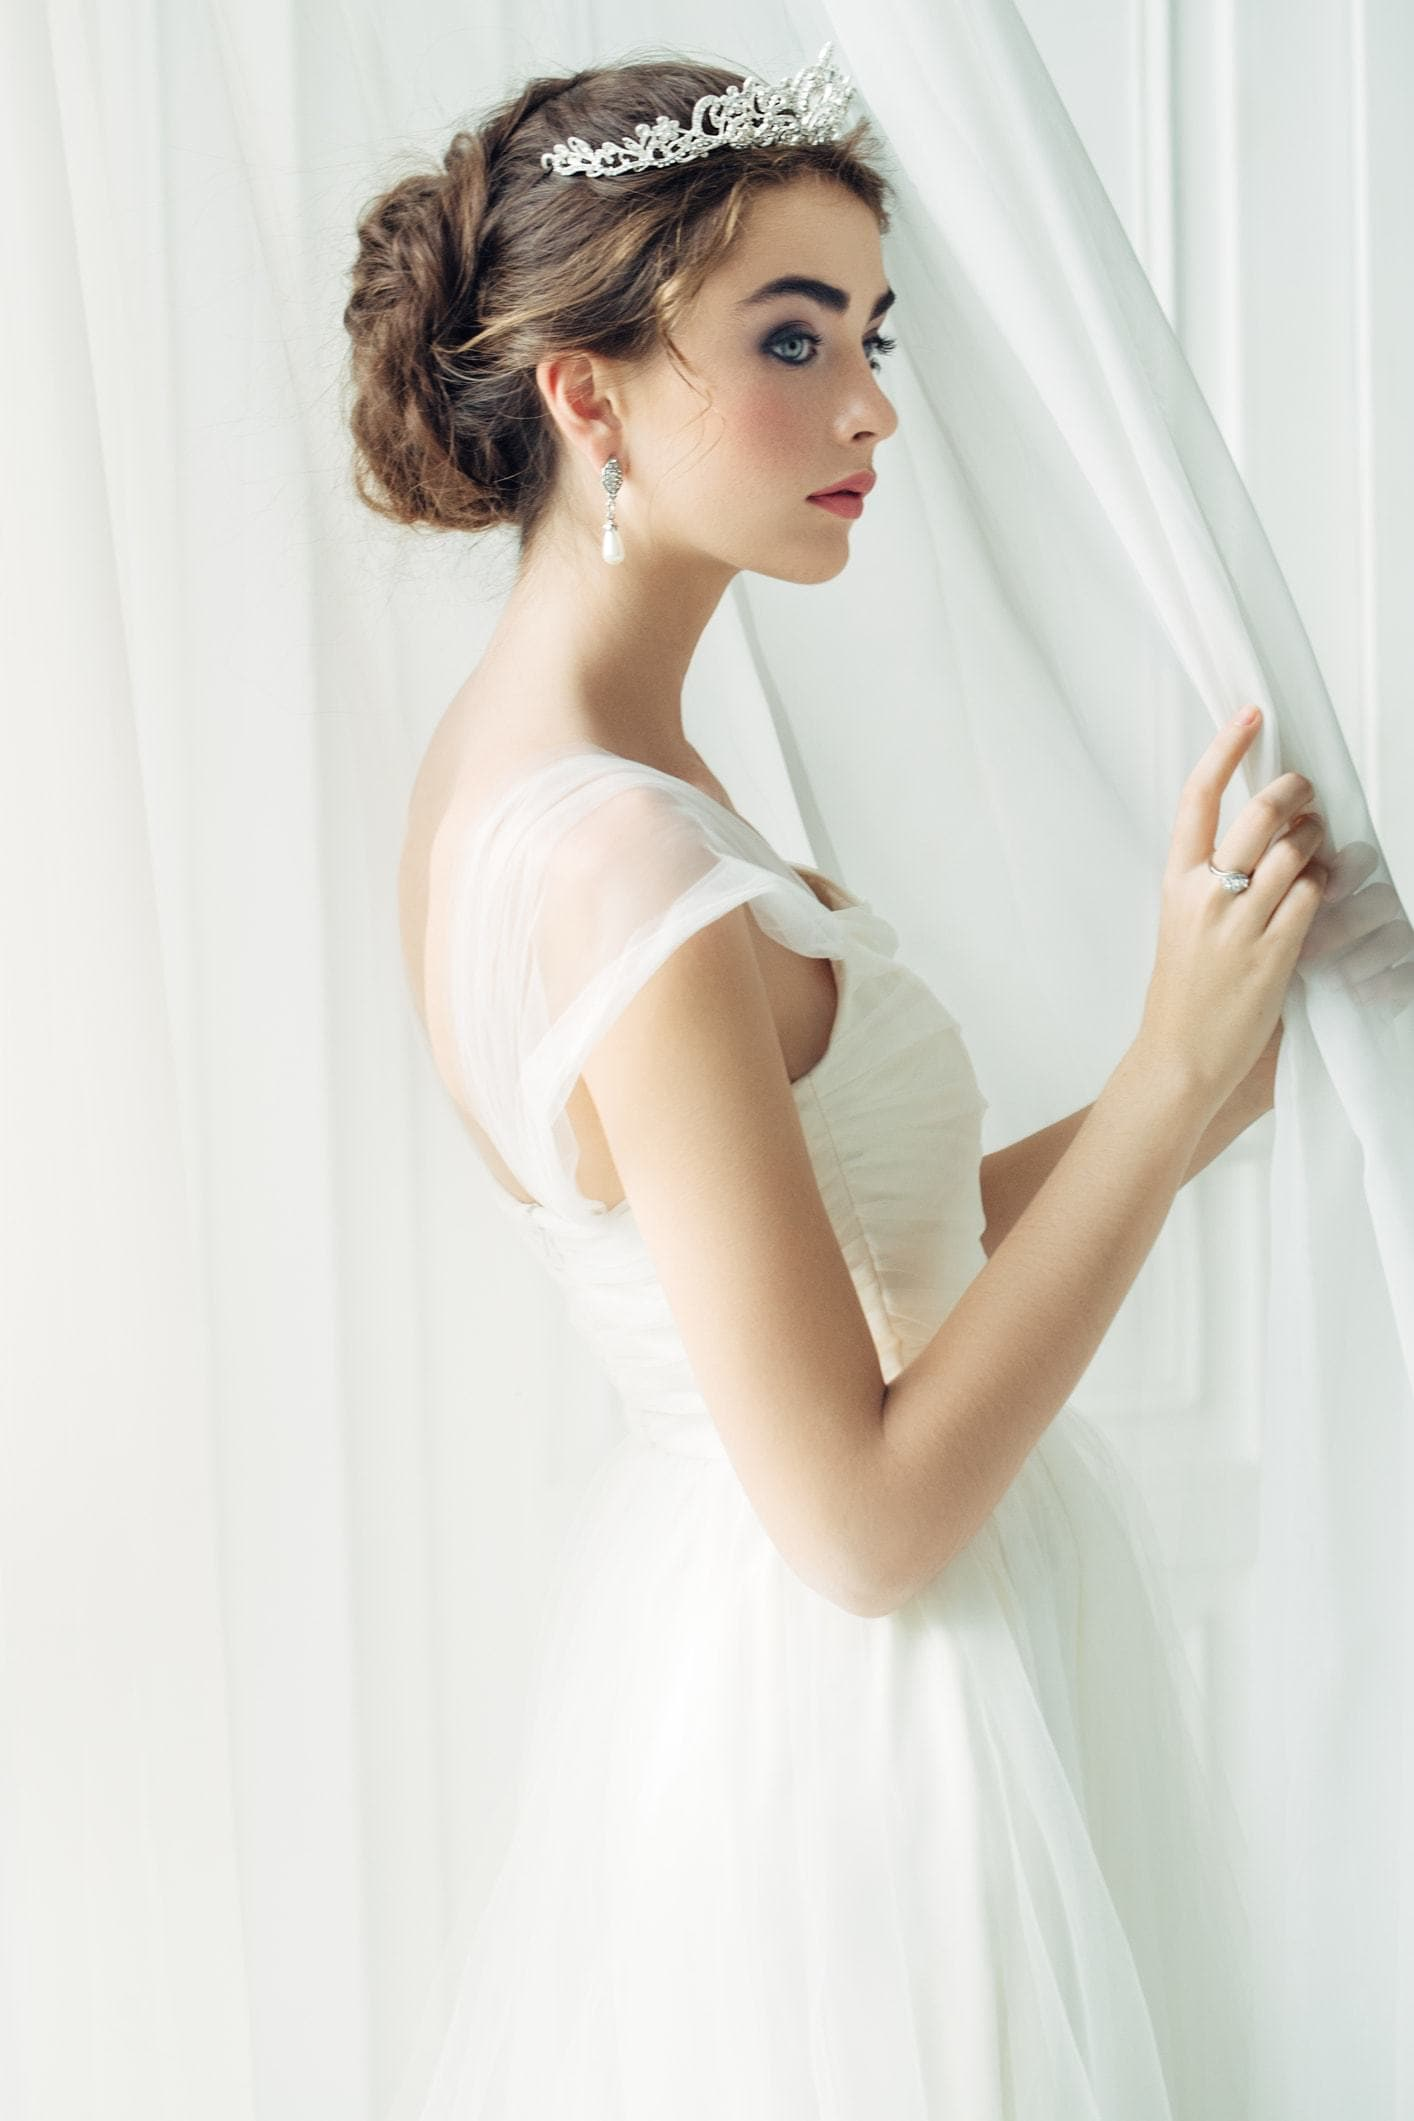 hairstyles with tiara front low updo